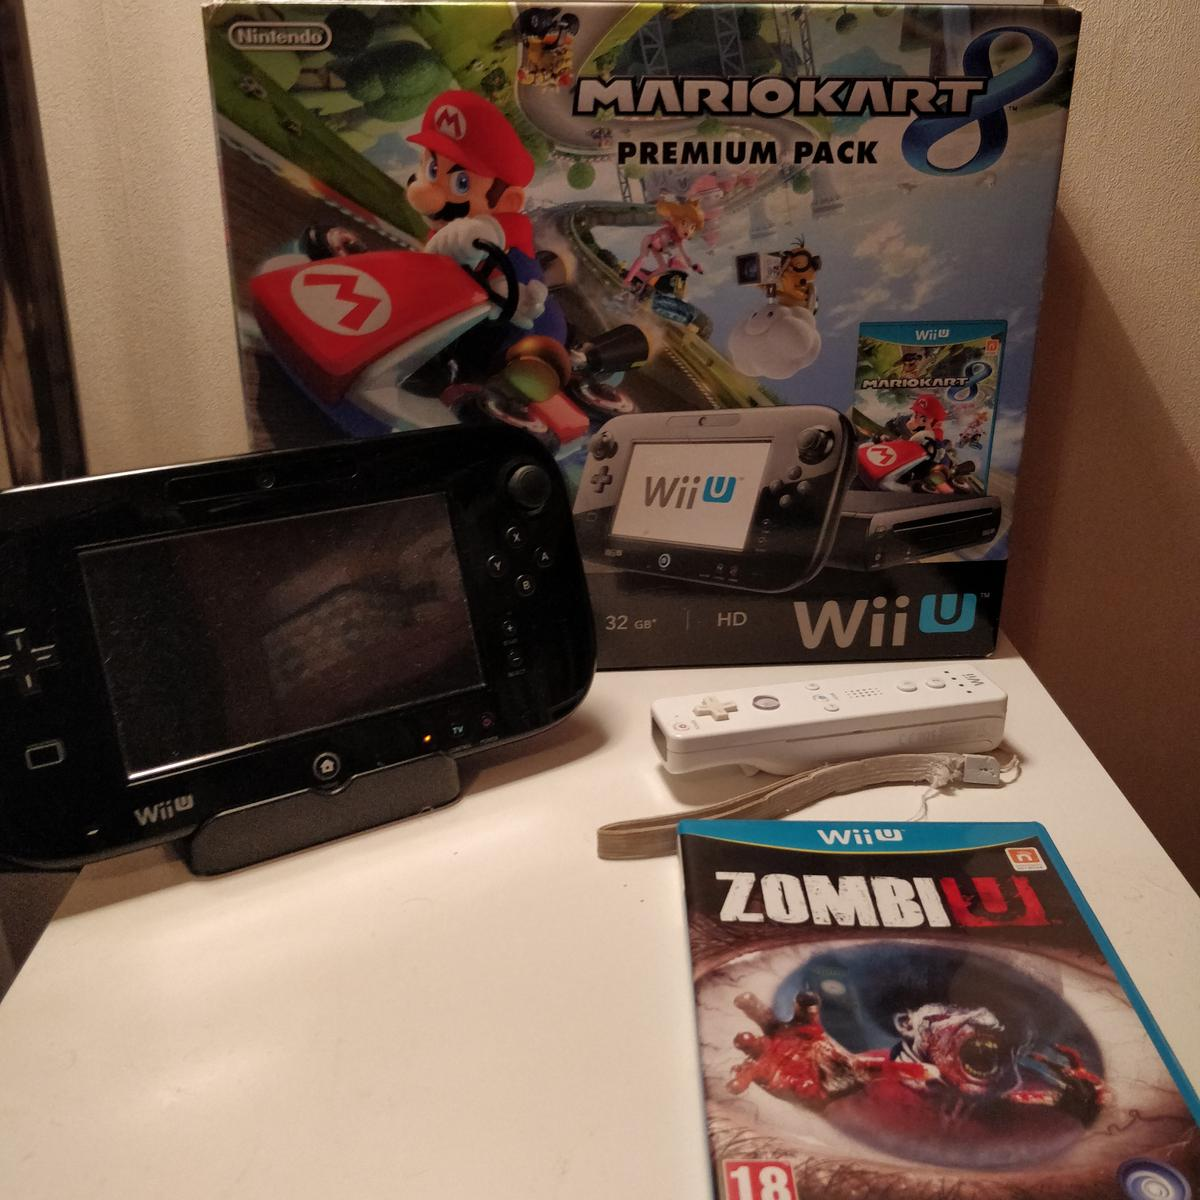 Wii U 32GB Console - With 7 games and Haxchi in TW14